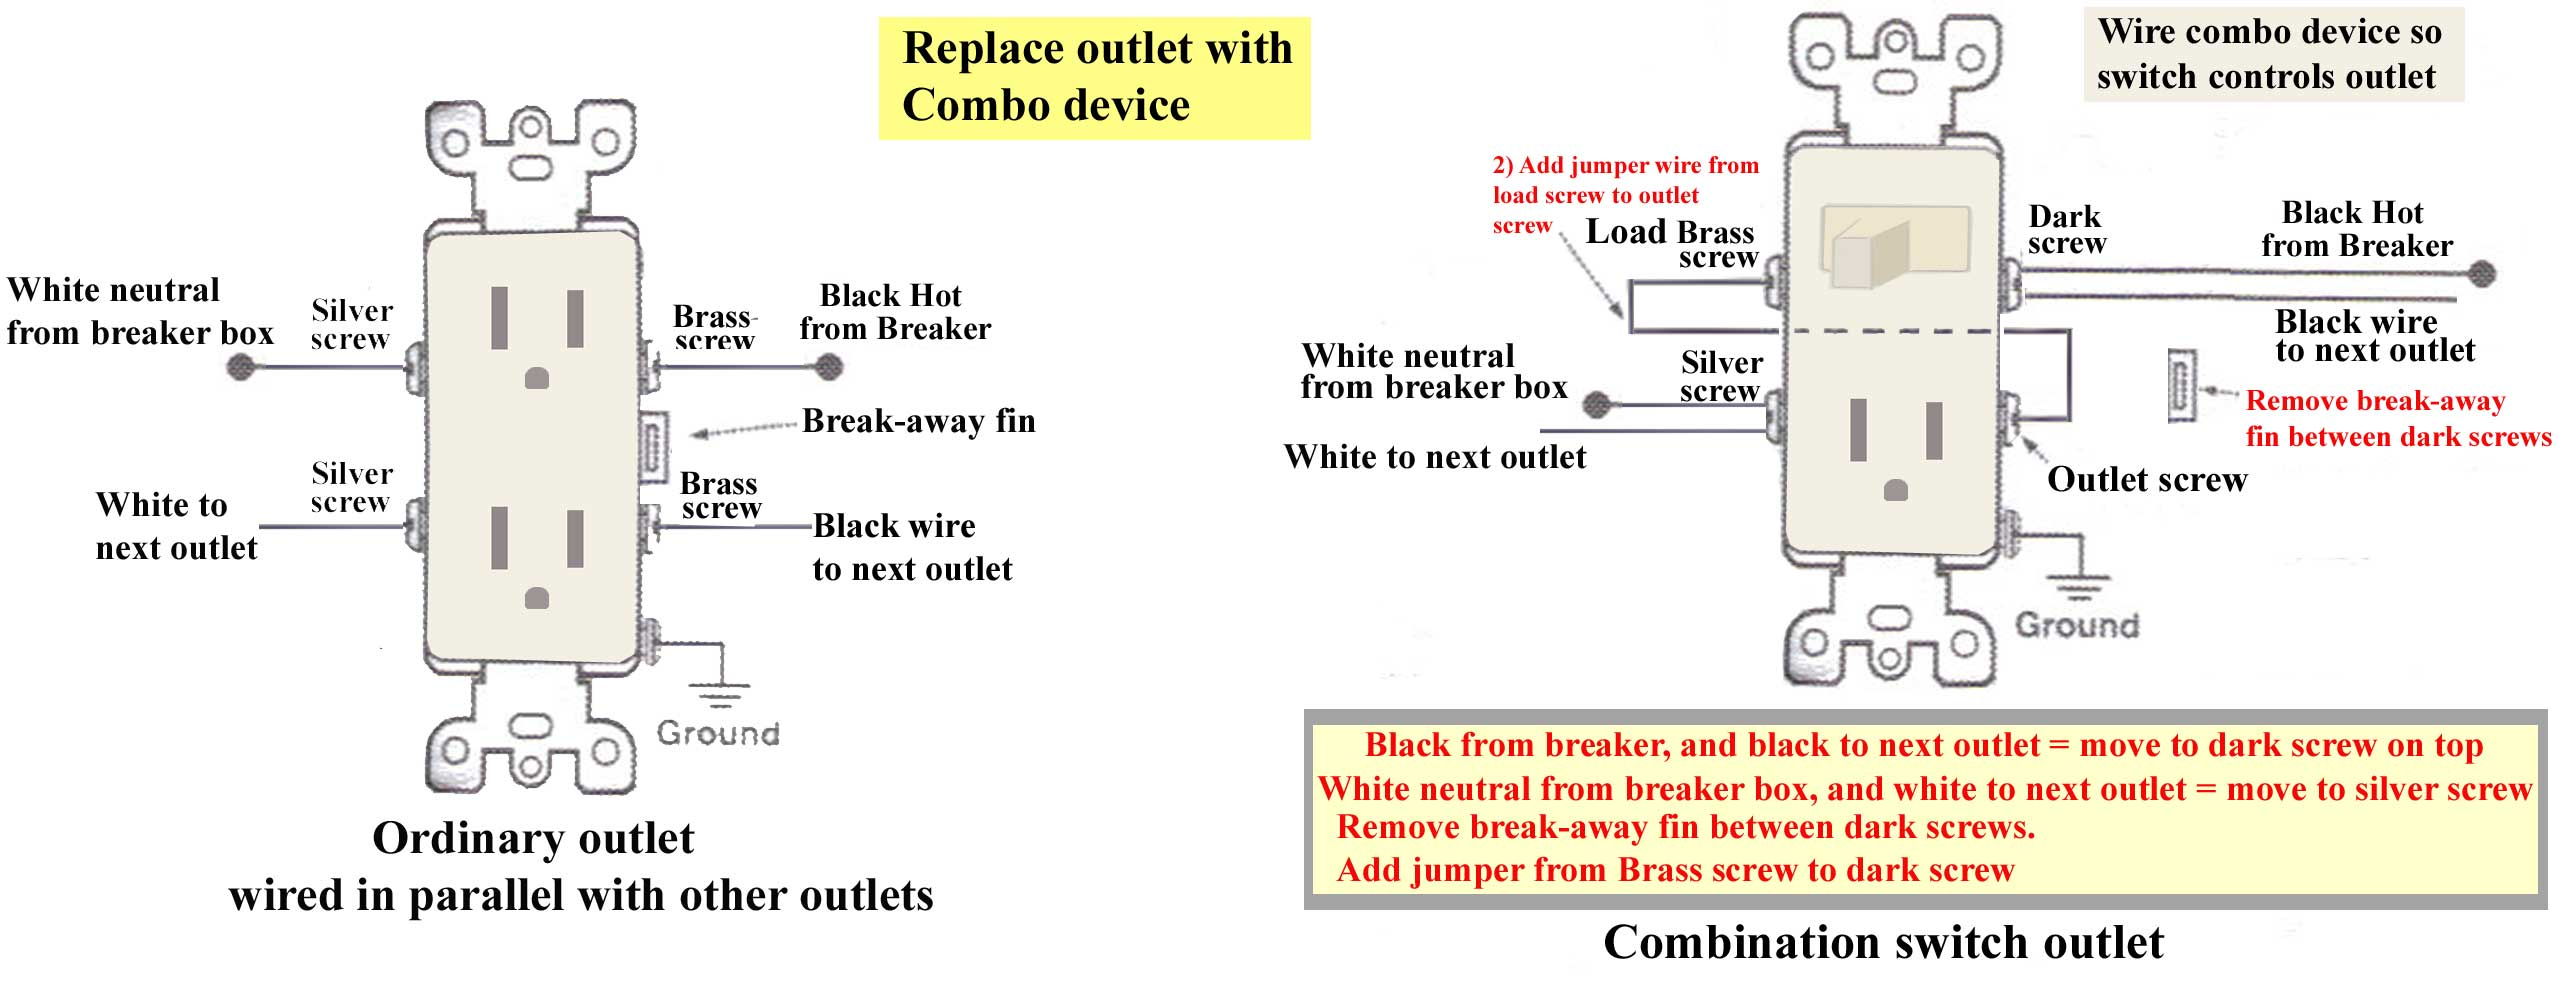 How To Replace Outlet With Combo Switch - Wiring a light switch and outlet together diagram